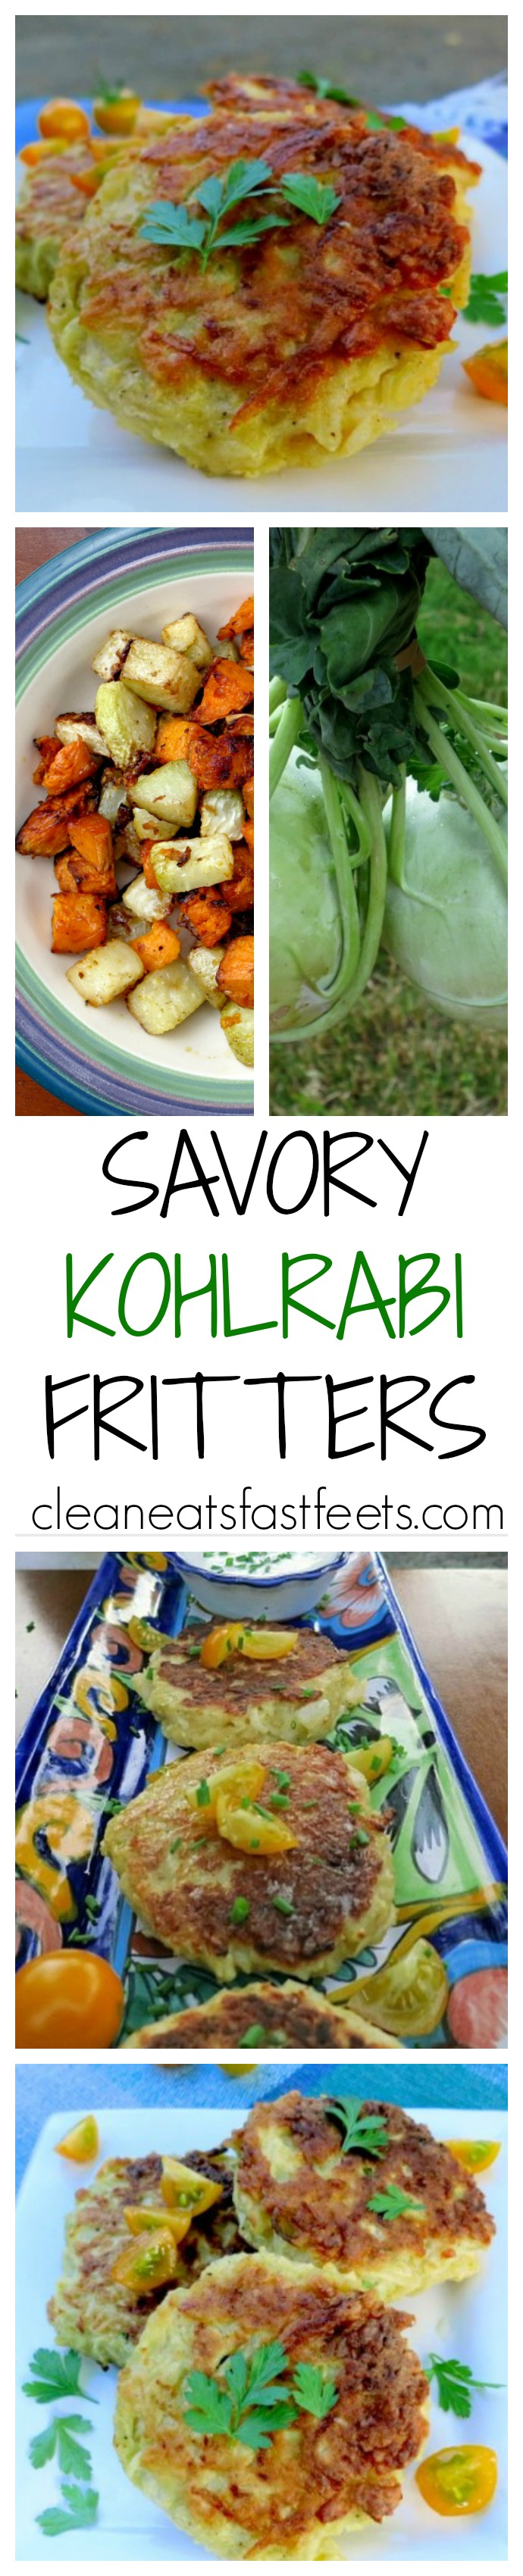 These savory fritters are perfect for a quick and easy meat free meal or as a veggie side dish. Chock full of kohlrabi, it's a great way to sneak in greens!